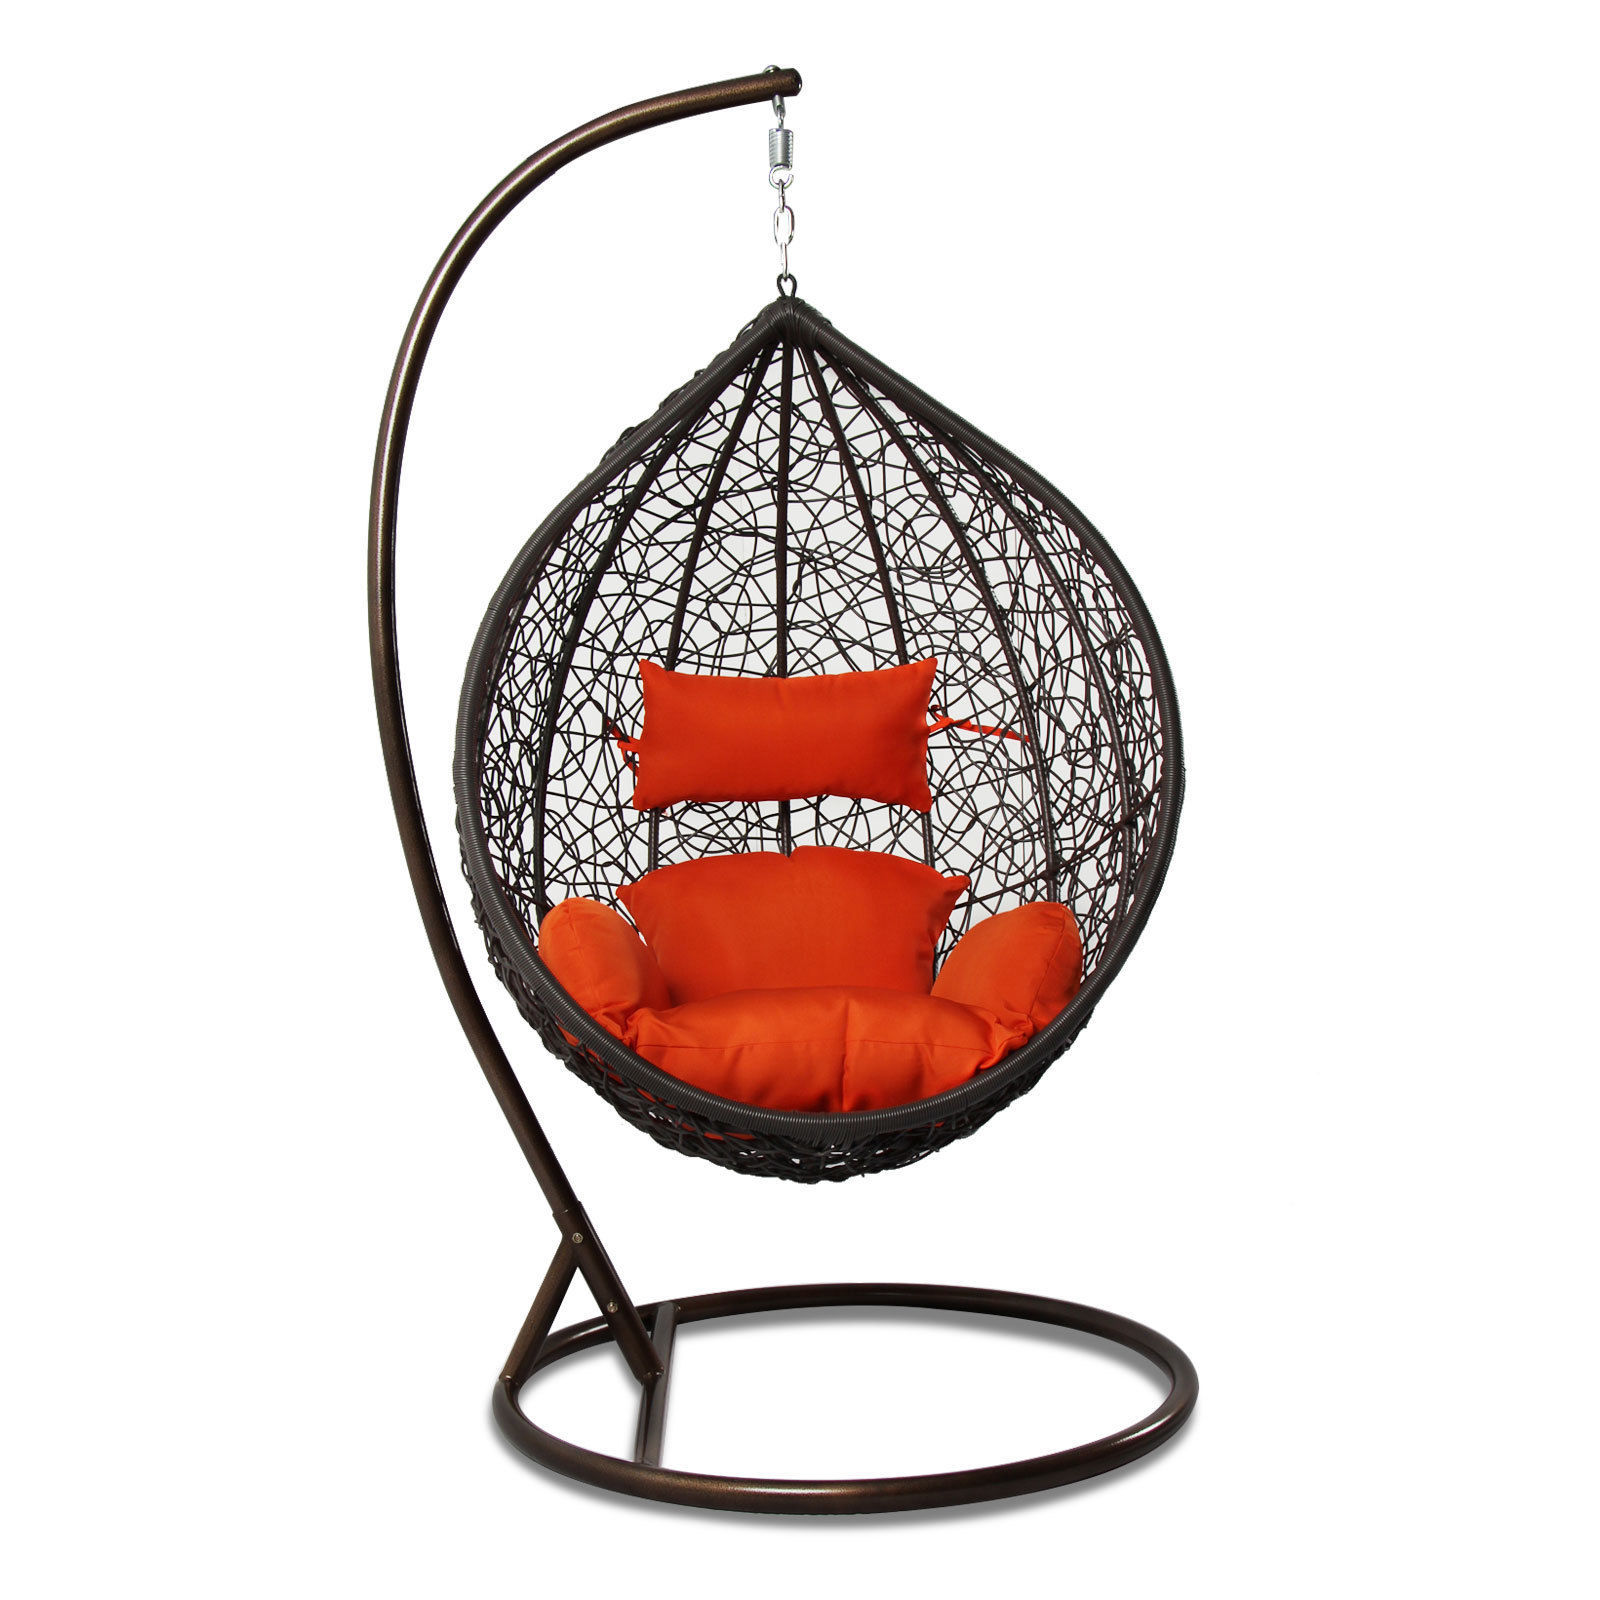 Egg Shaped Chairs Rattan Outdoor Wicker Hanging Chair Egg Shape Stand Porch